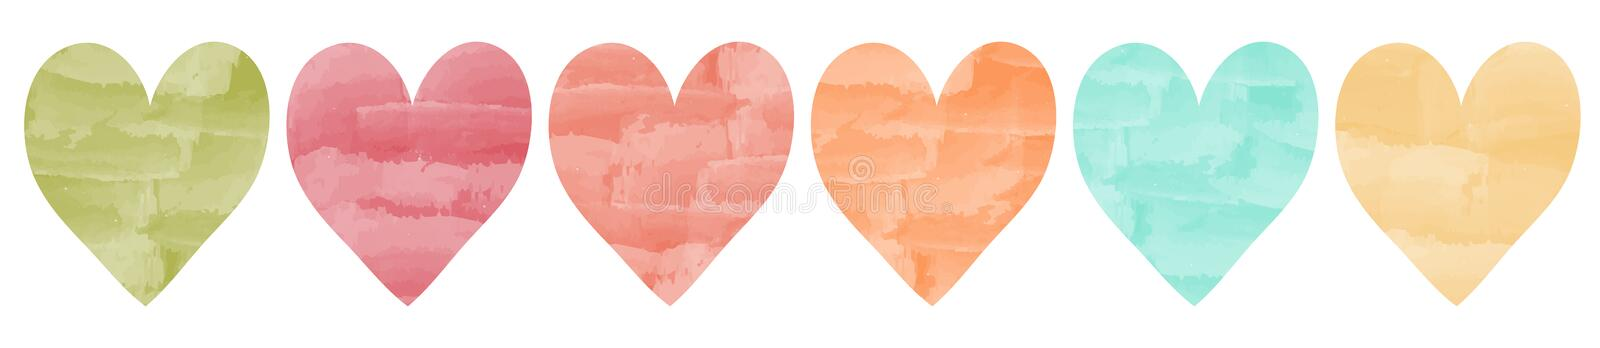 Aquarell hearts different colors. Pretty vector aquarell hearts collection with details in fine colors royalty free illustration